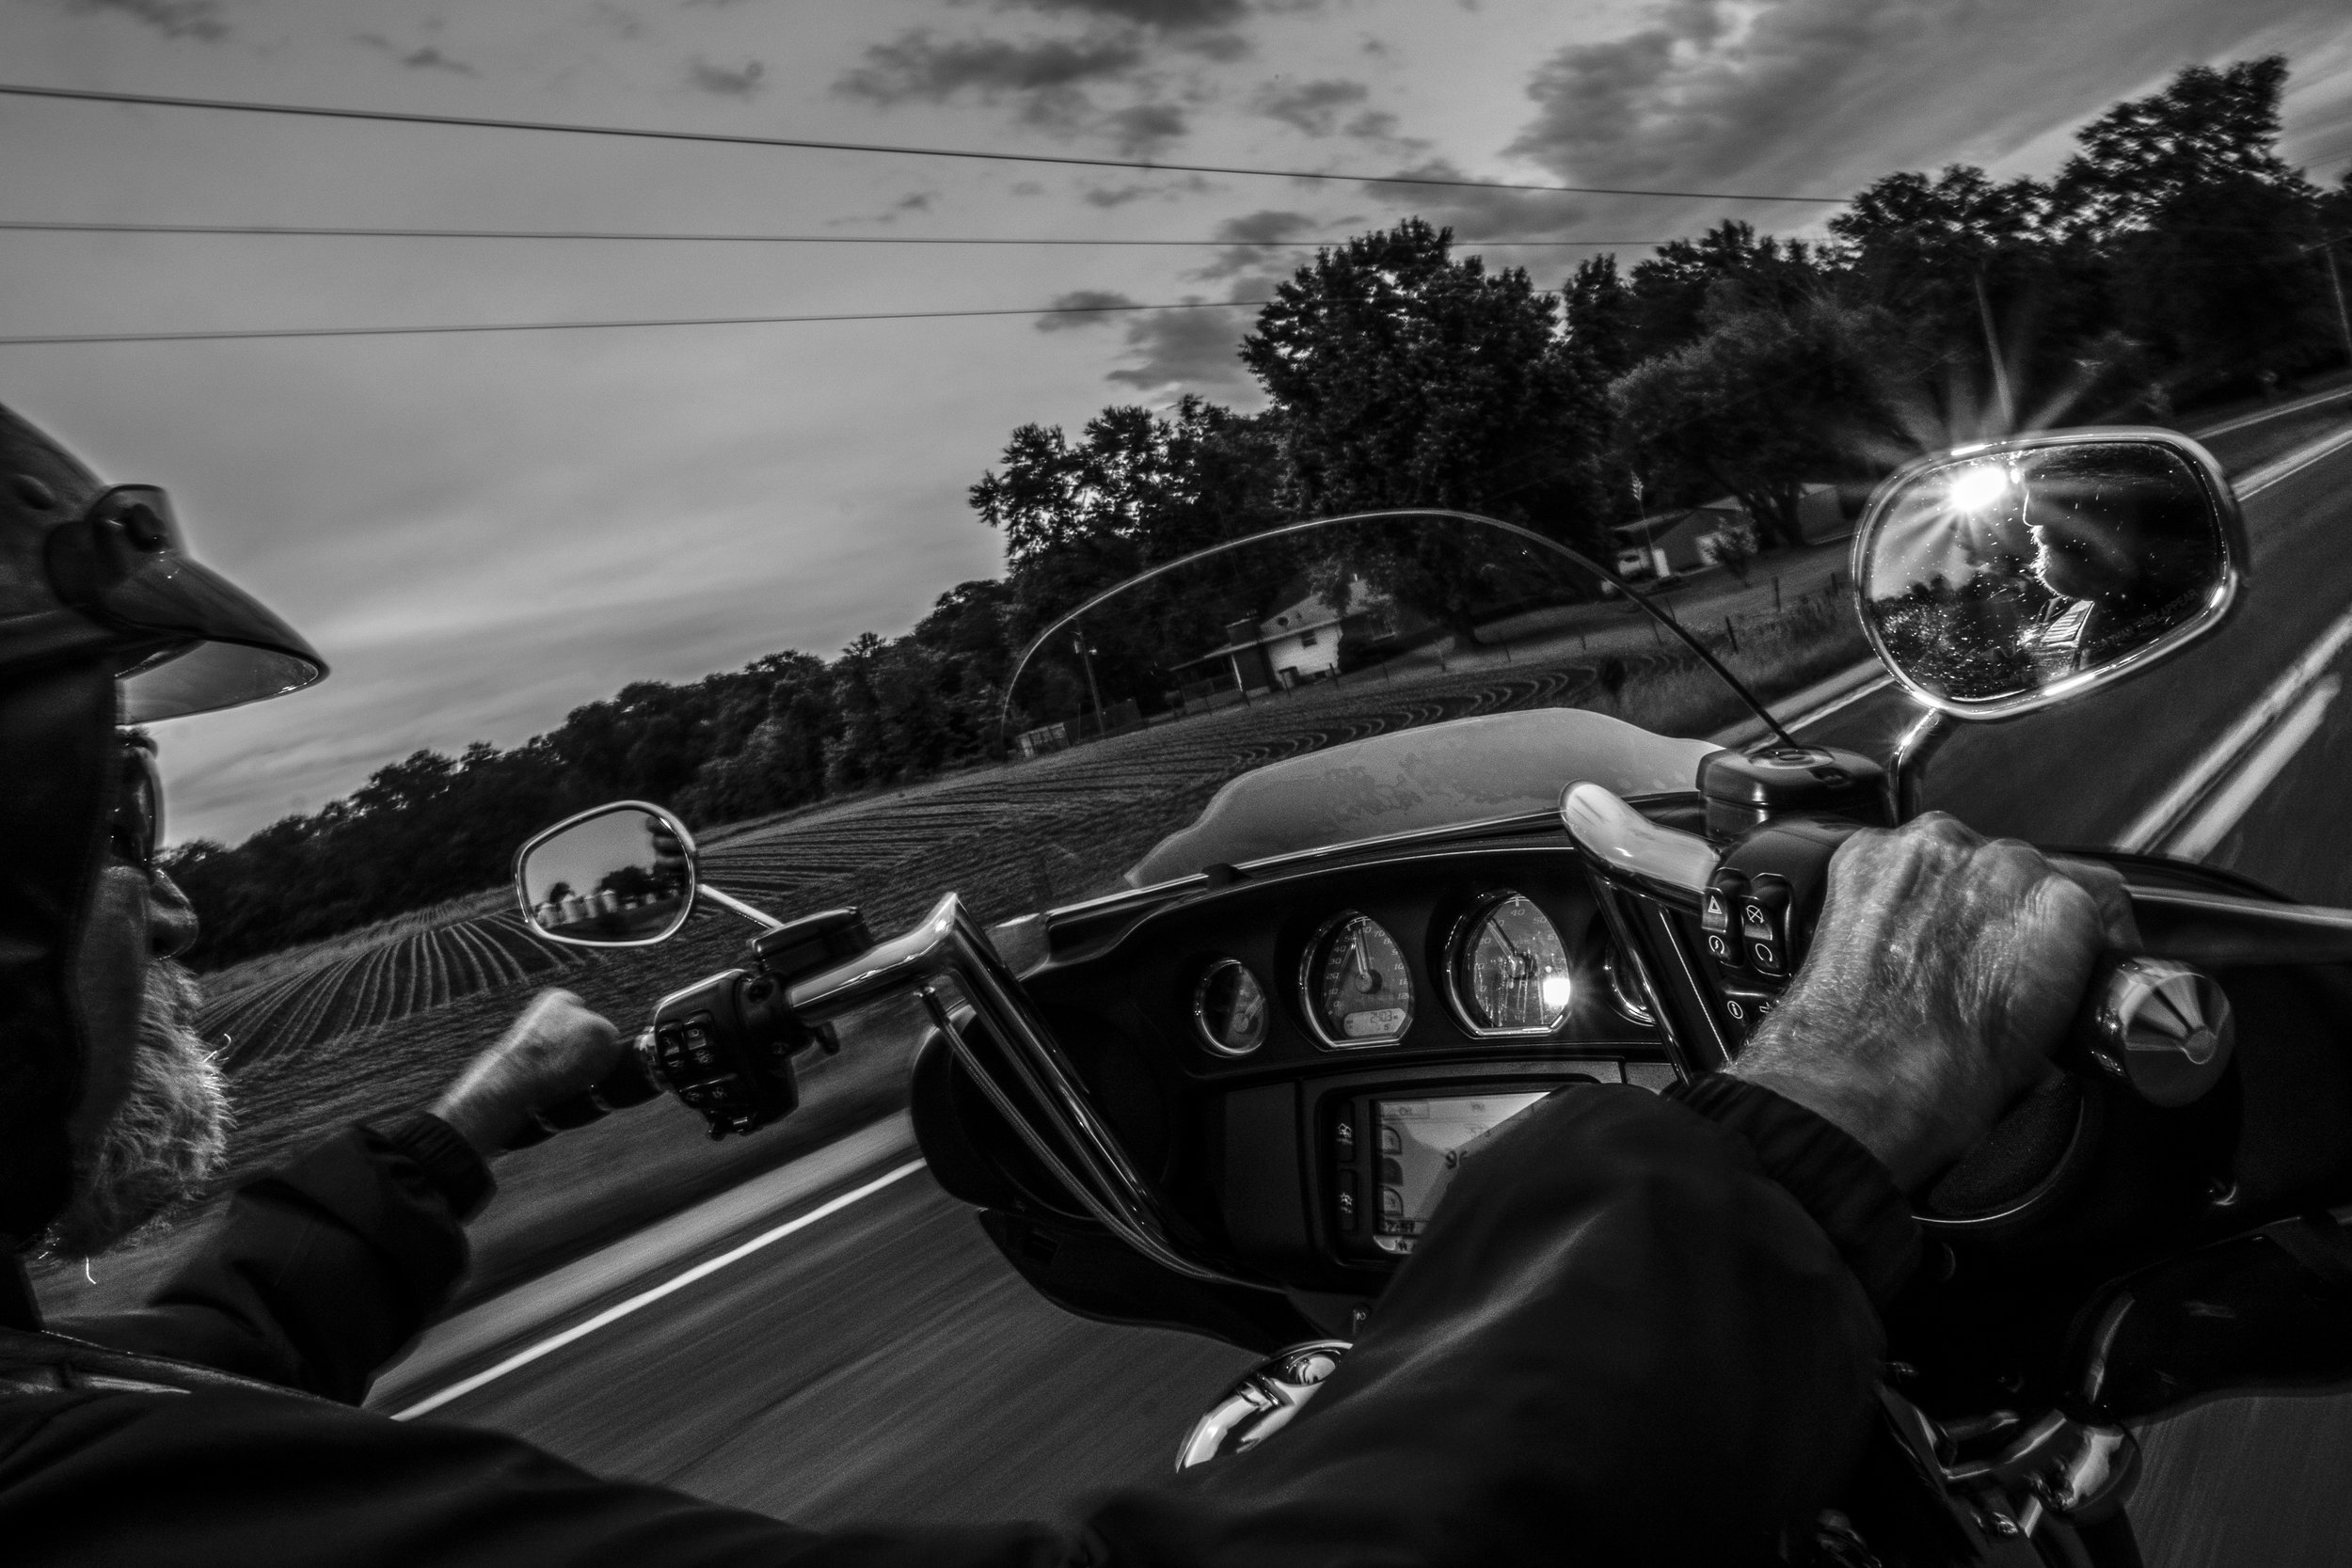 Patriot Guard Rider and Senior Ride Captain, Bill Walden, rides his motorcycle near Mexico Missouri on Friday, Jun. 21, 2019. Bill has escorted over 500 veteran funerals during his time with the organization.